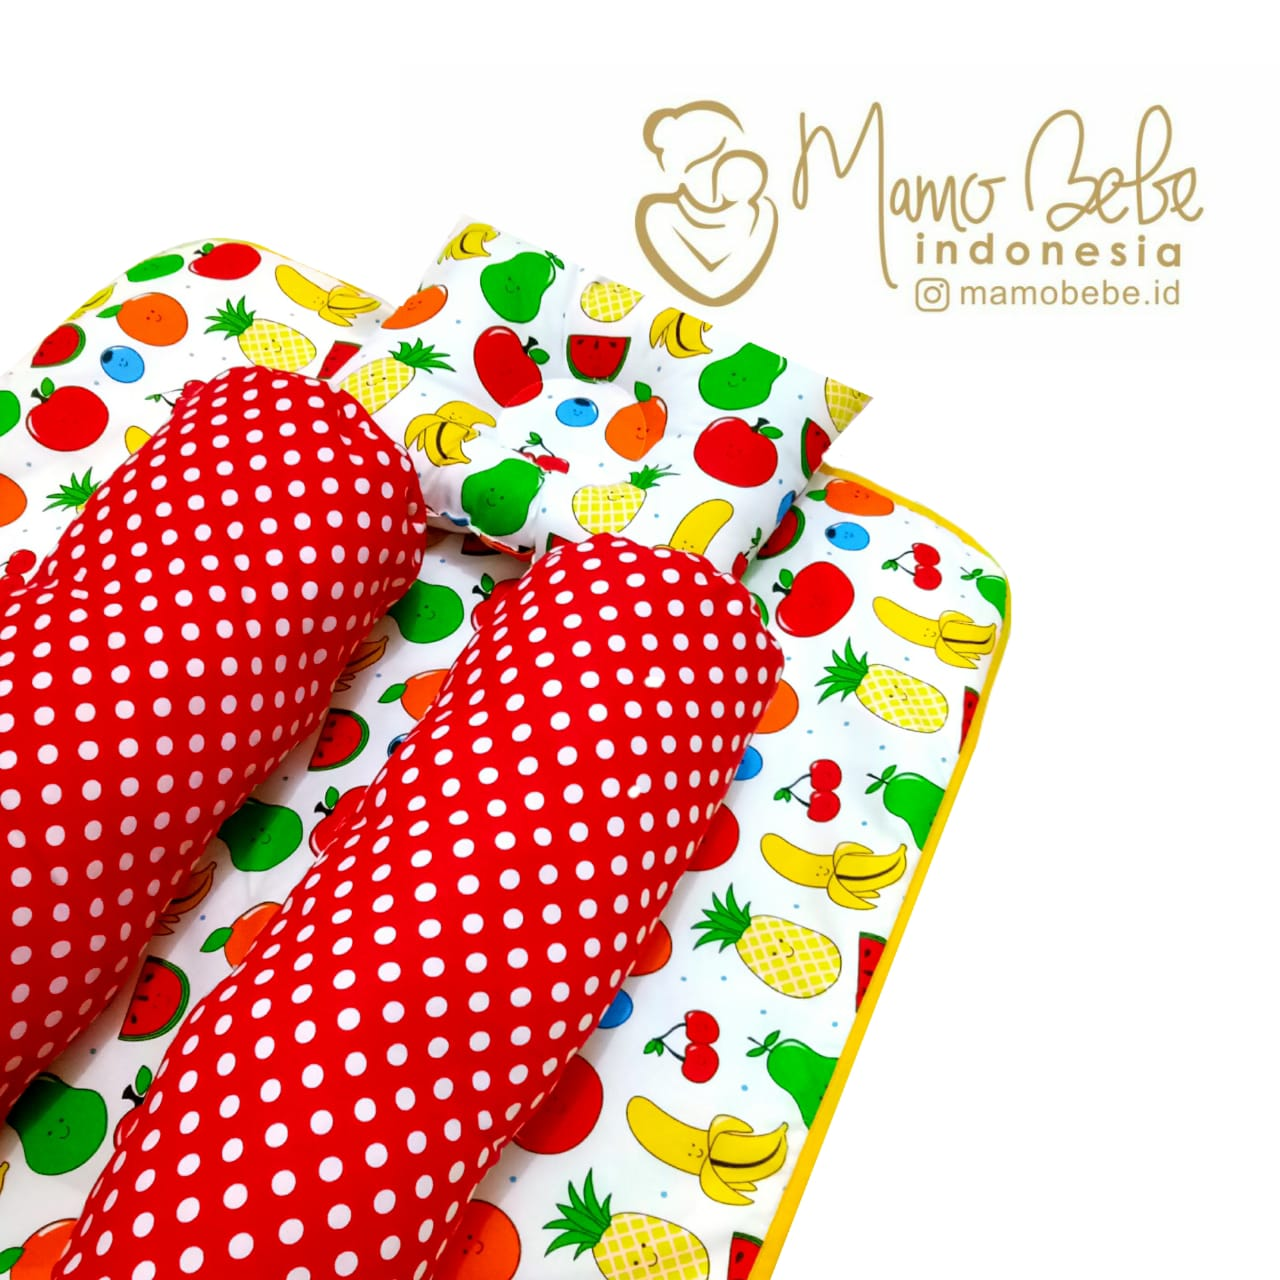 EKSKLUSIF Kado Bayi Baby Bedding Set 4in1 Matras Perlak Set Bantal Peang Plus 2 Guling motif Buah-Buahan Fruits